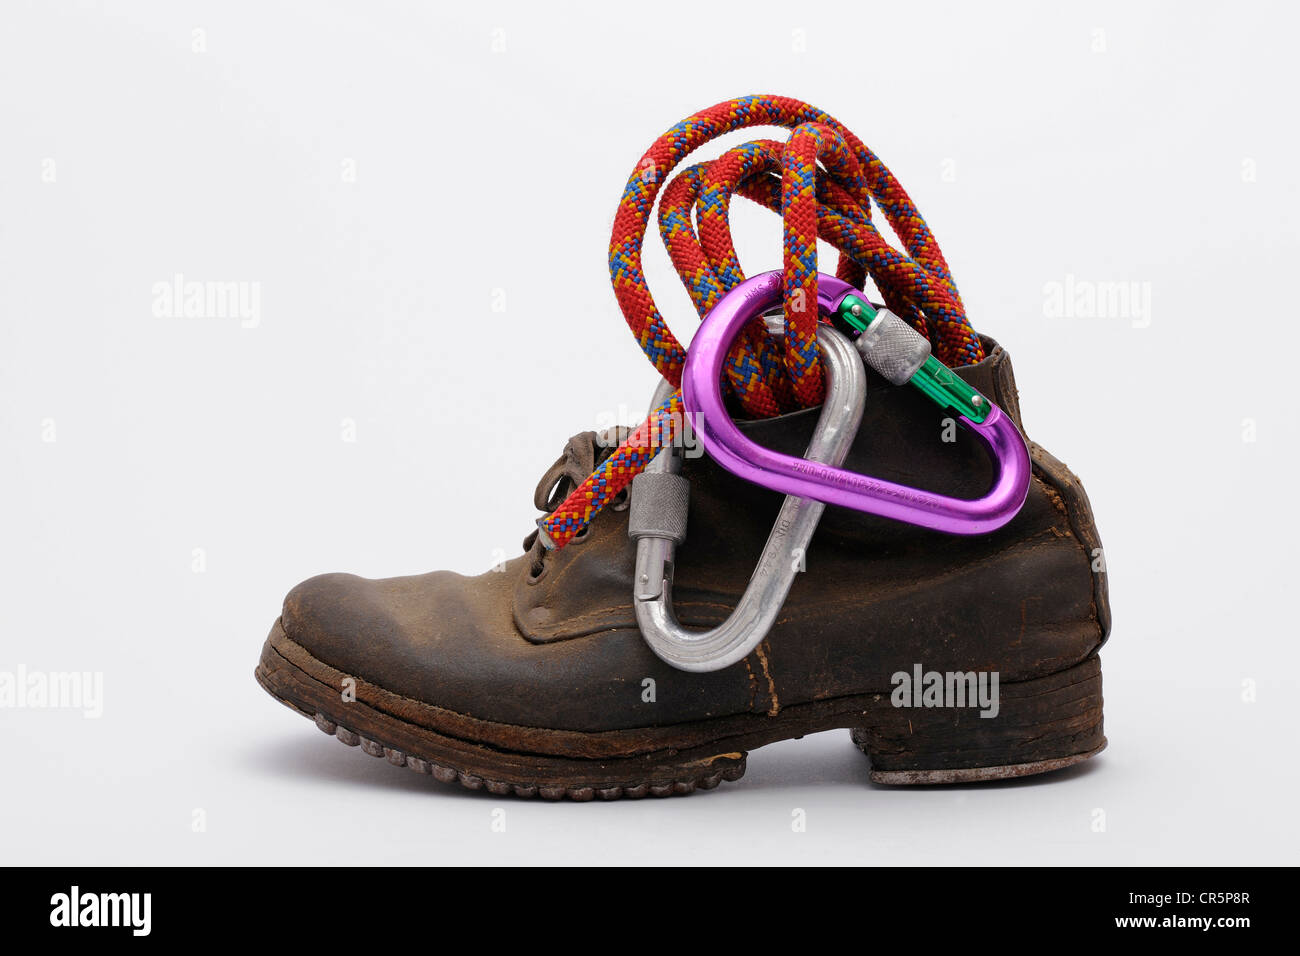 Old mountain boots with nailed soles and iron heels, with a climbing rope and carabiner - Stock Image